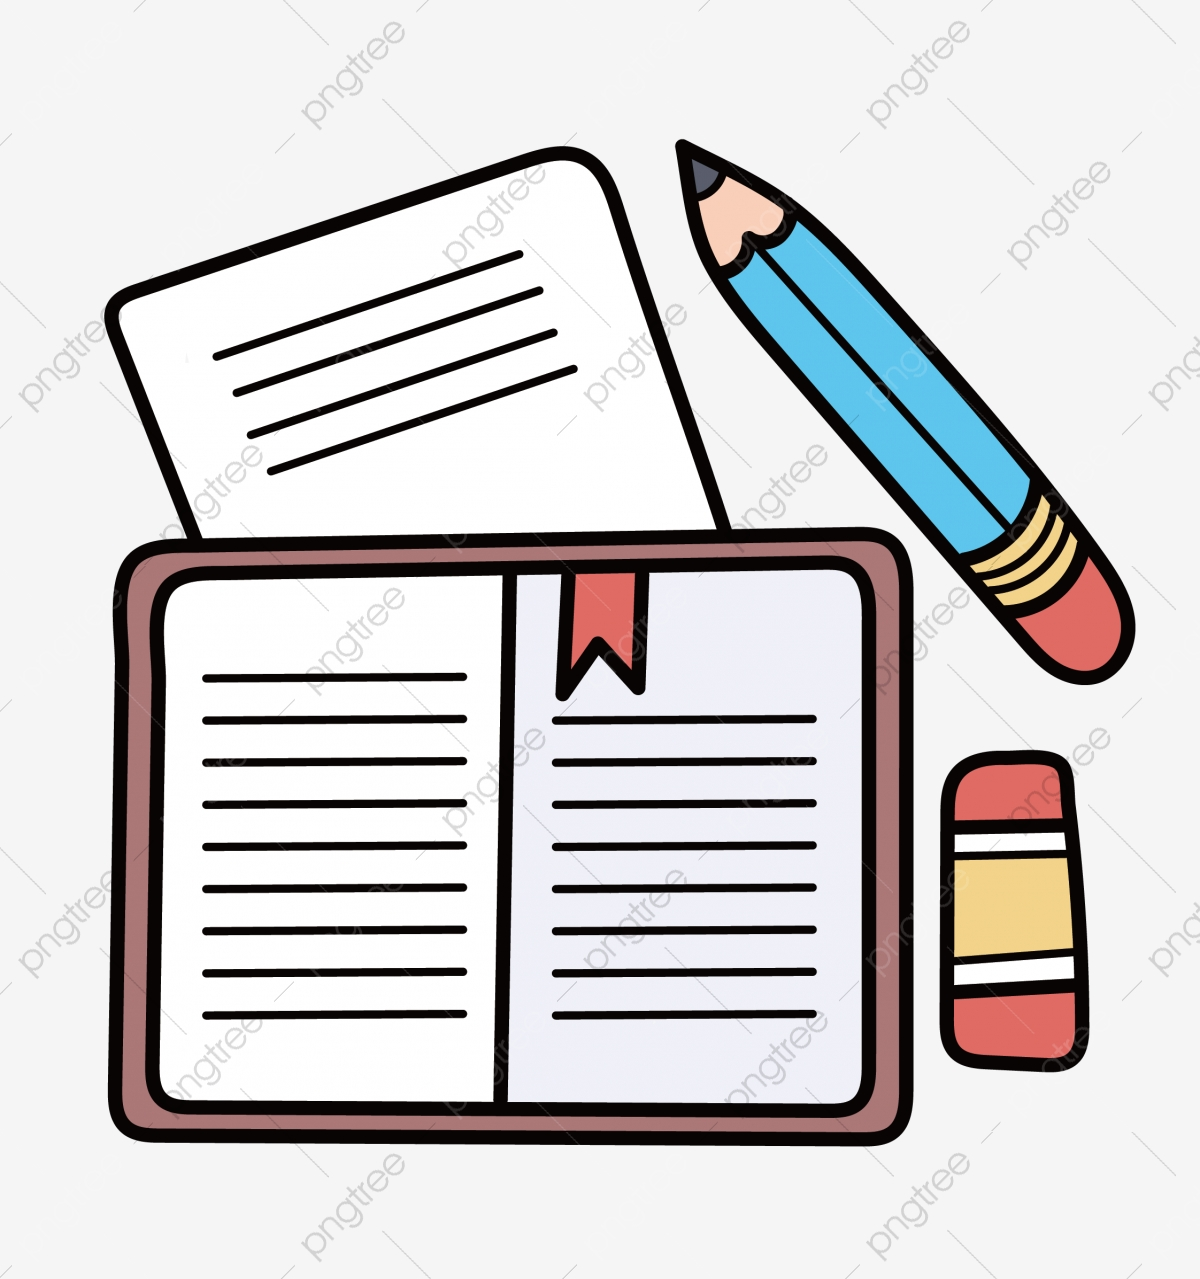 Class Notes Png - Class Notes Illustration Illustration, Notepad, Pencil, Eraser PNG ...